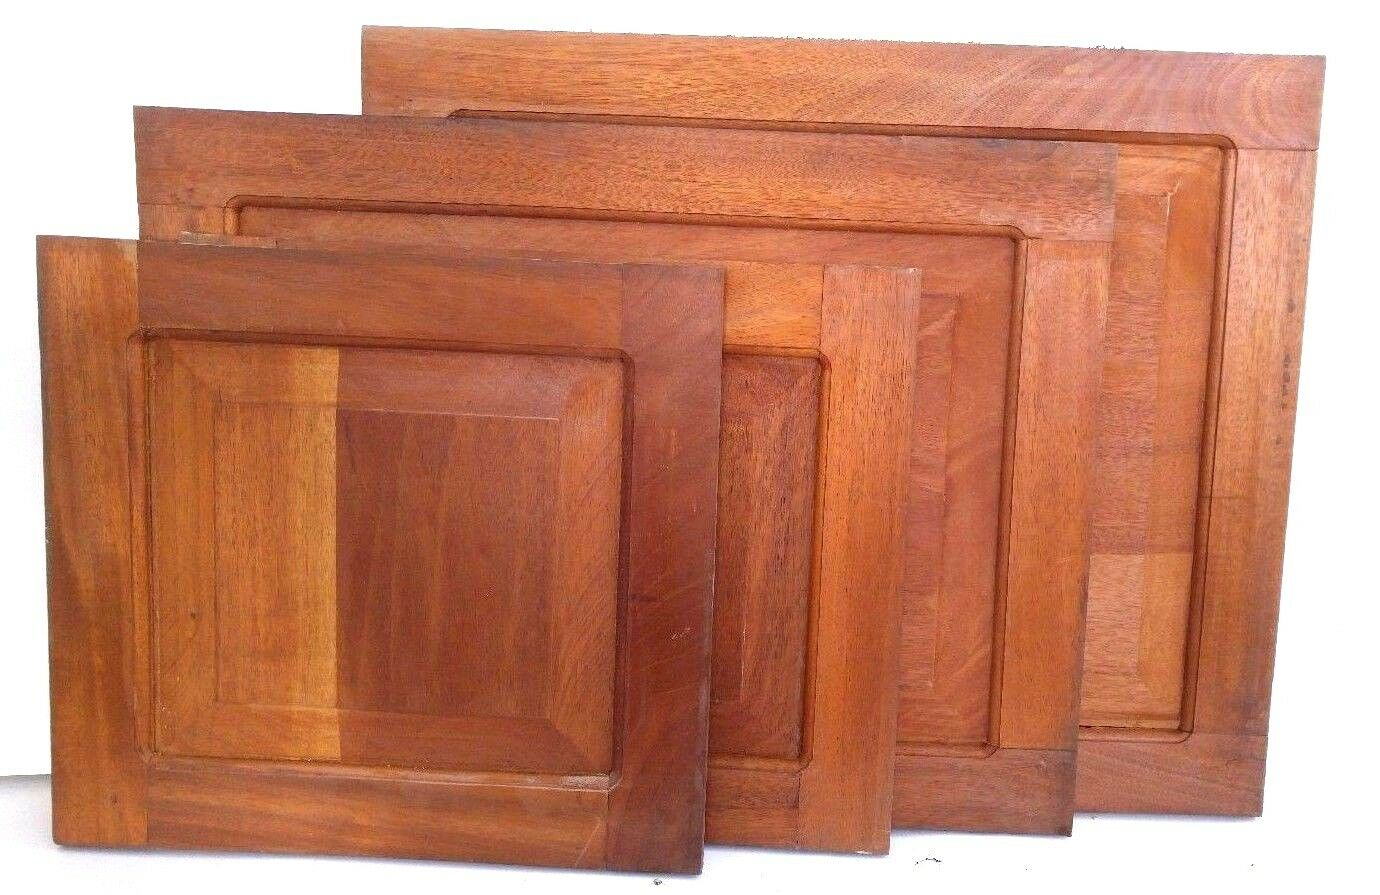 2 RAISED PANEL KITCHEN CABINET DOOR 24 x18  unfinished SOLID WOOD Cedar Peruvian